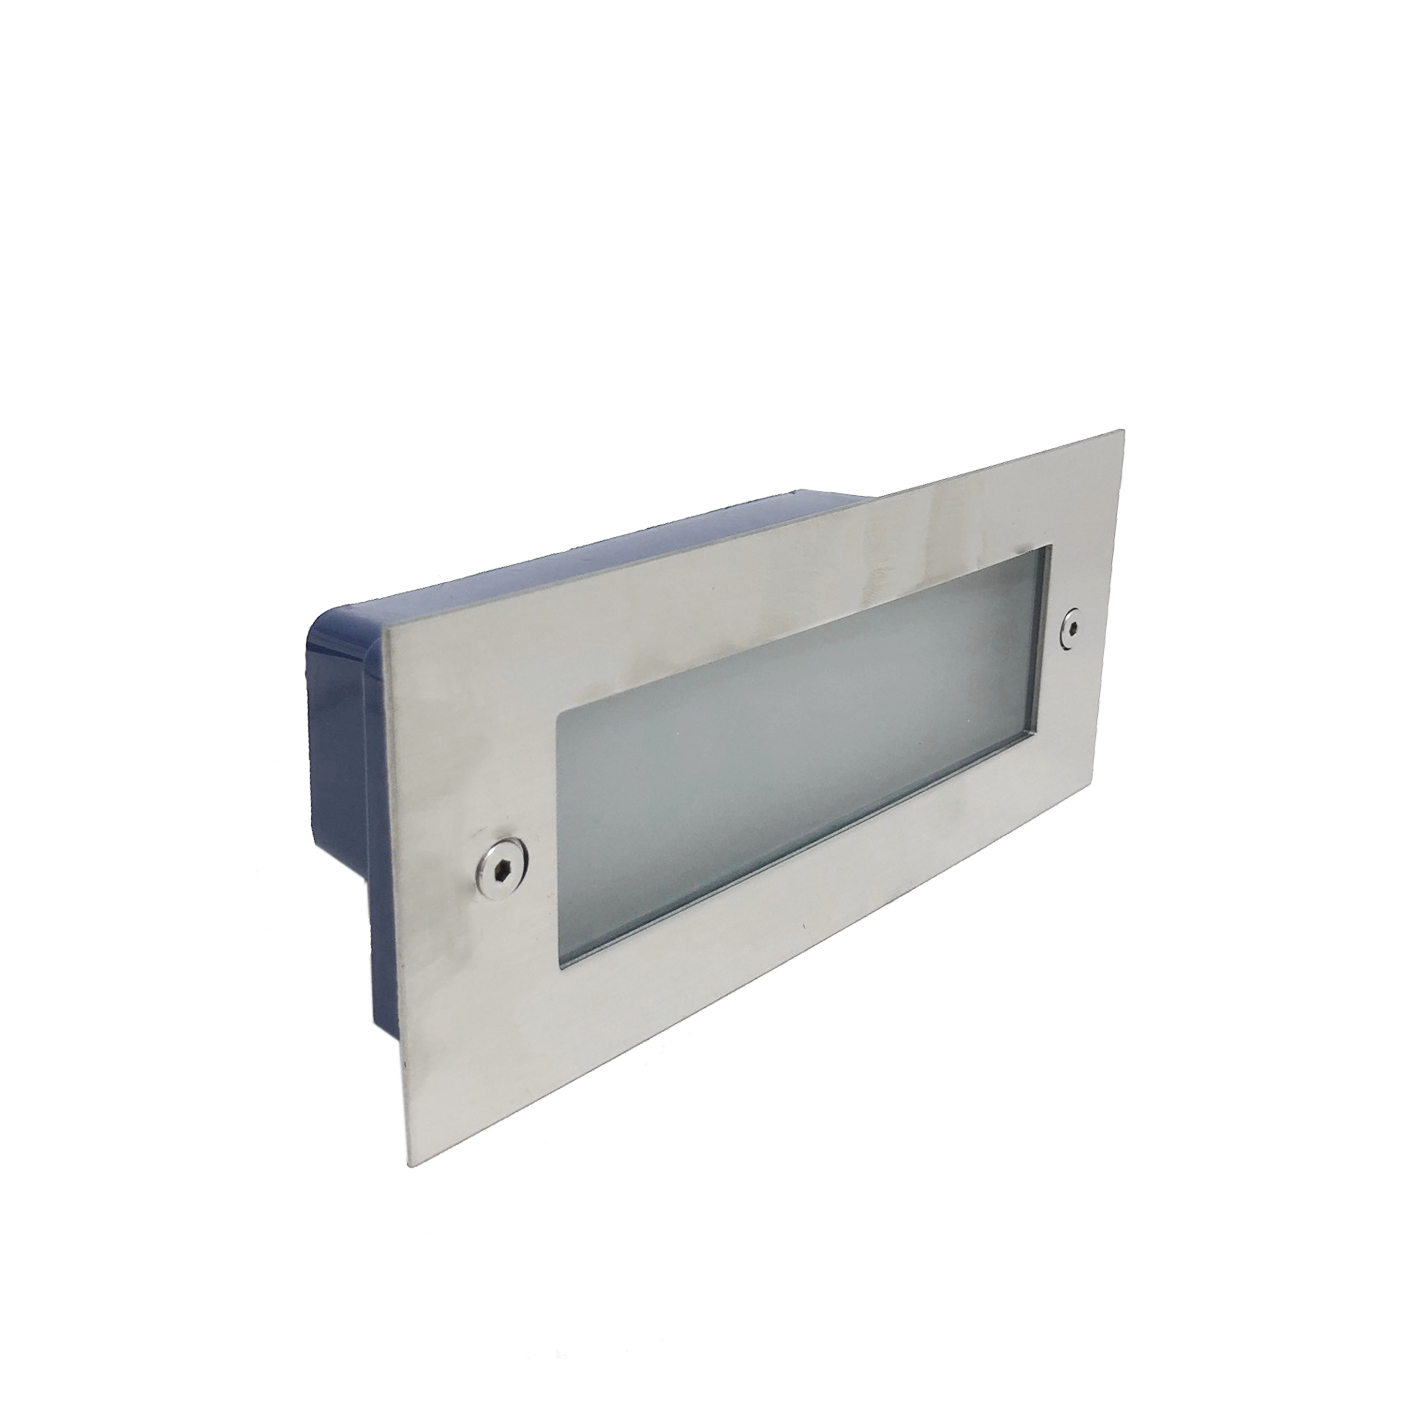 Spotlight camino de la luz Led de 8w, Rectangular, de pared empotrado smd 2835 FC2-8W